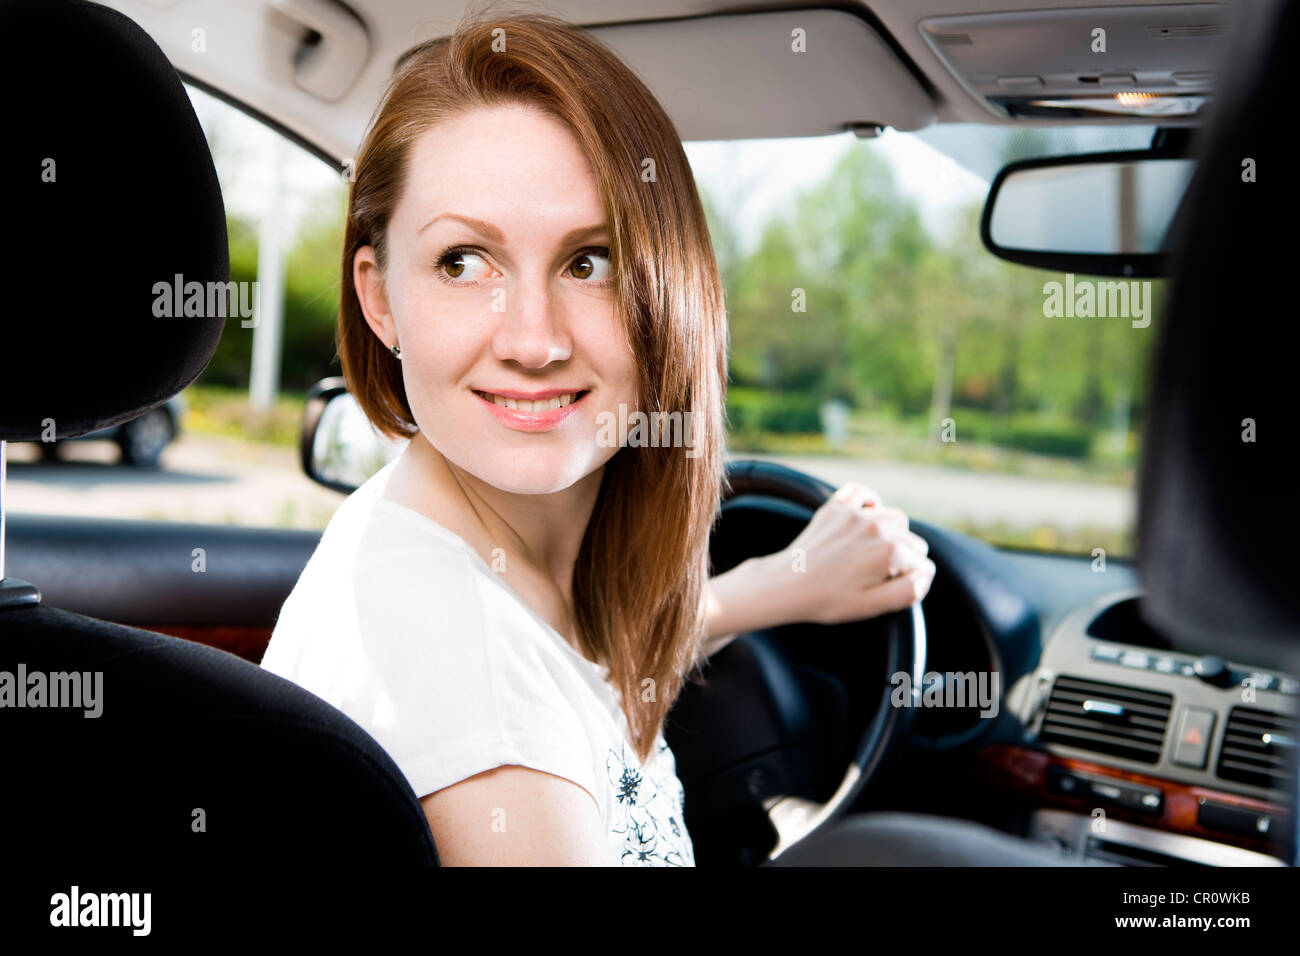 Young woman driving a car - Stock Image